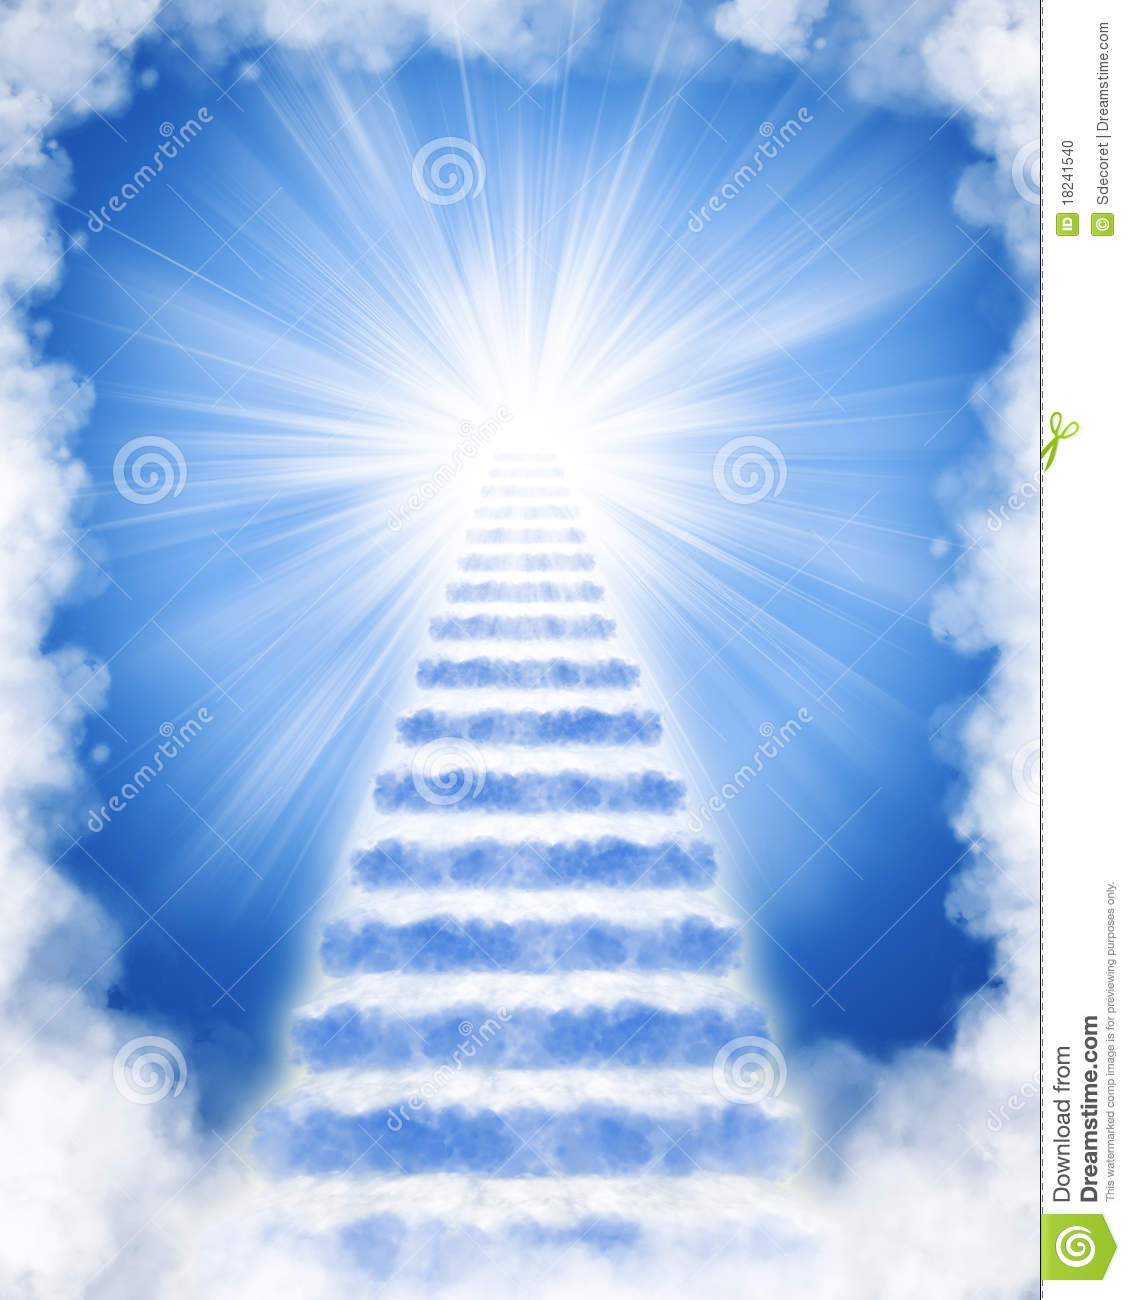 Worksheet What Clouds Made Of worksheet what clouds made of mikyu free stairs to heaven stock photo image 18241540 heaven